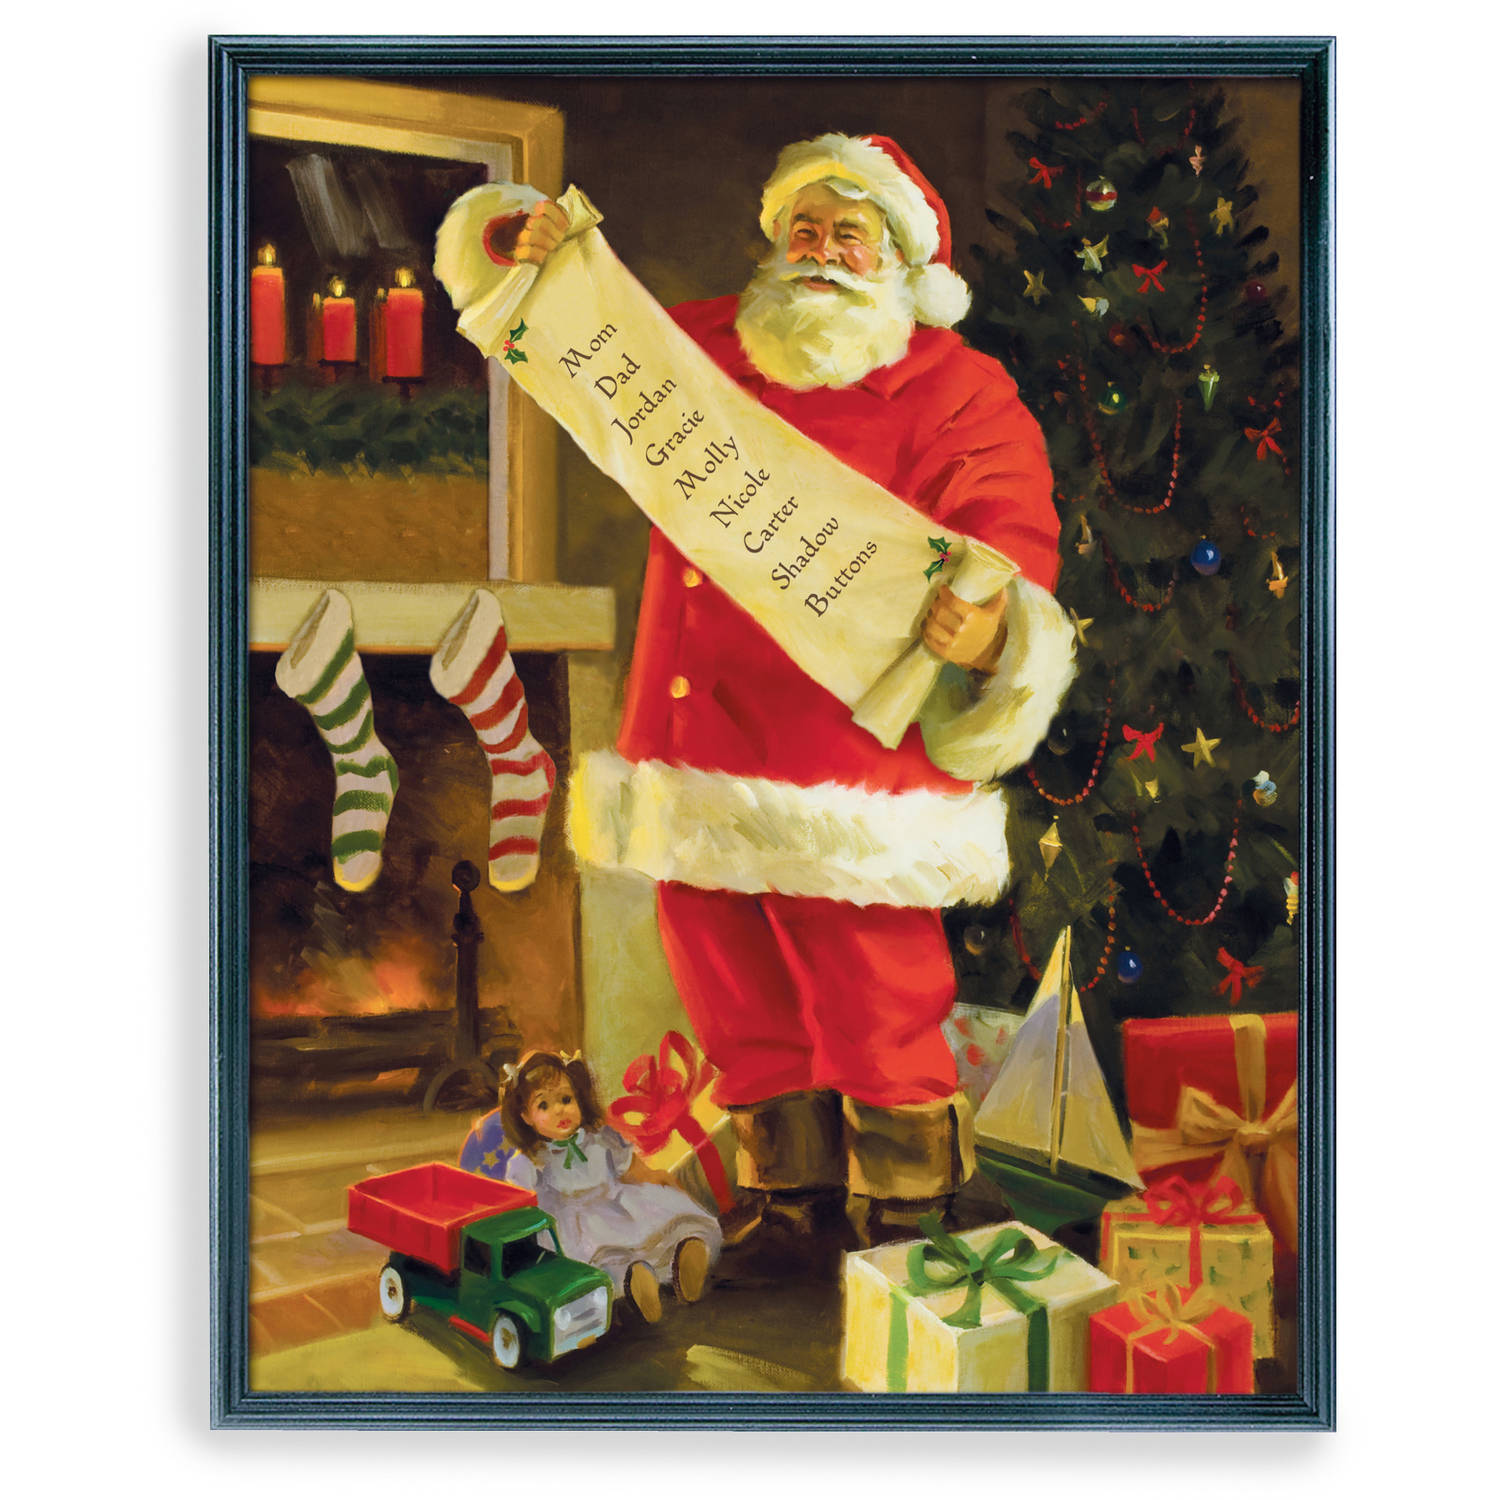 Personalized framed santas list canvas framed art available in personalized framed santas list canvas framed art available in multiple sizes walmart jeuxipadfo Choice Image